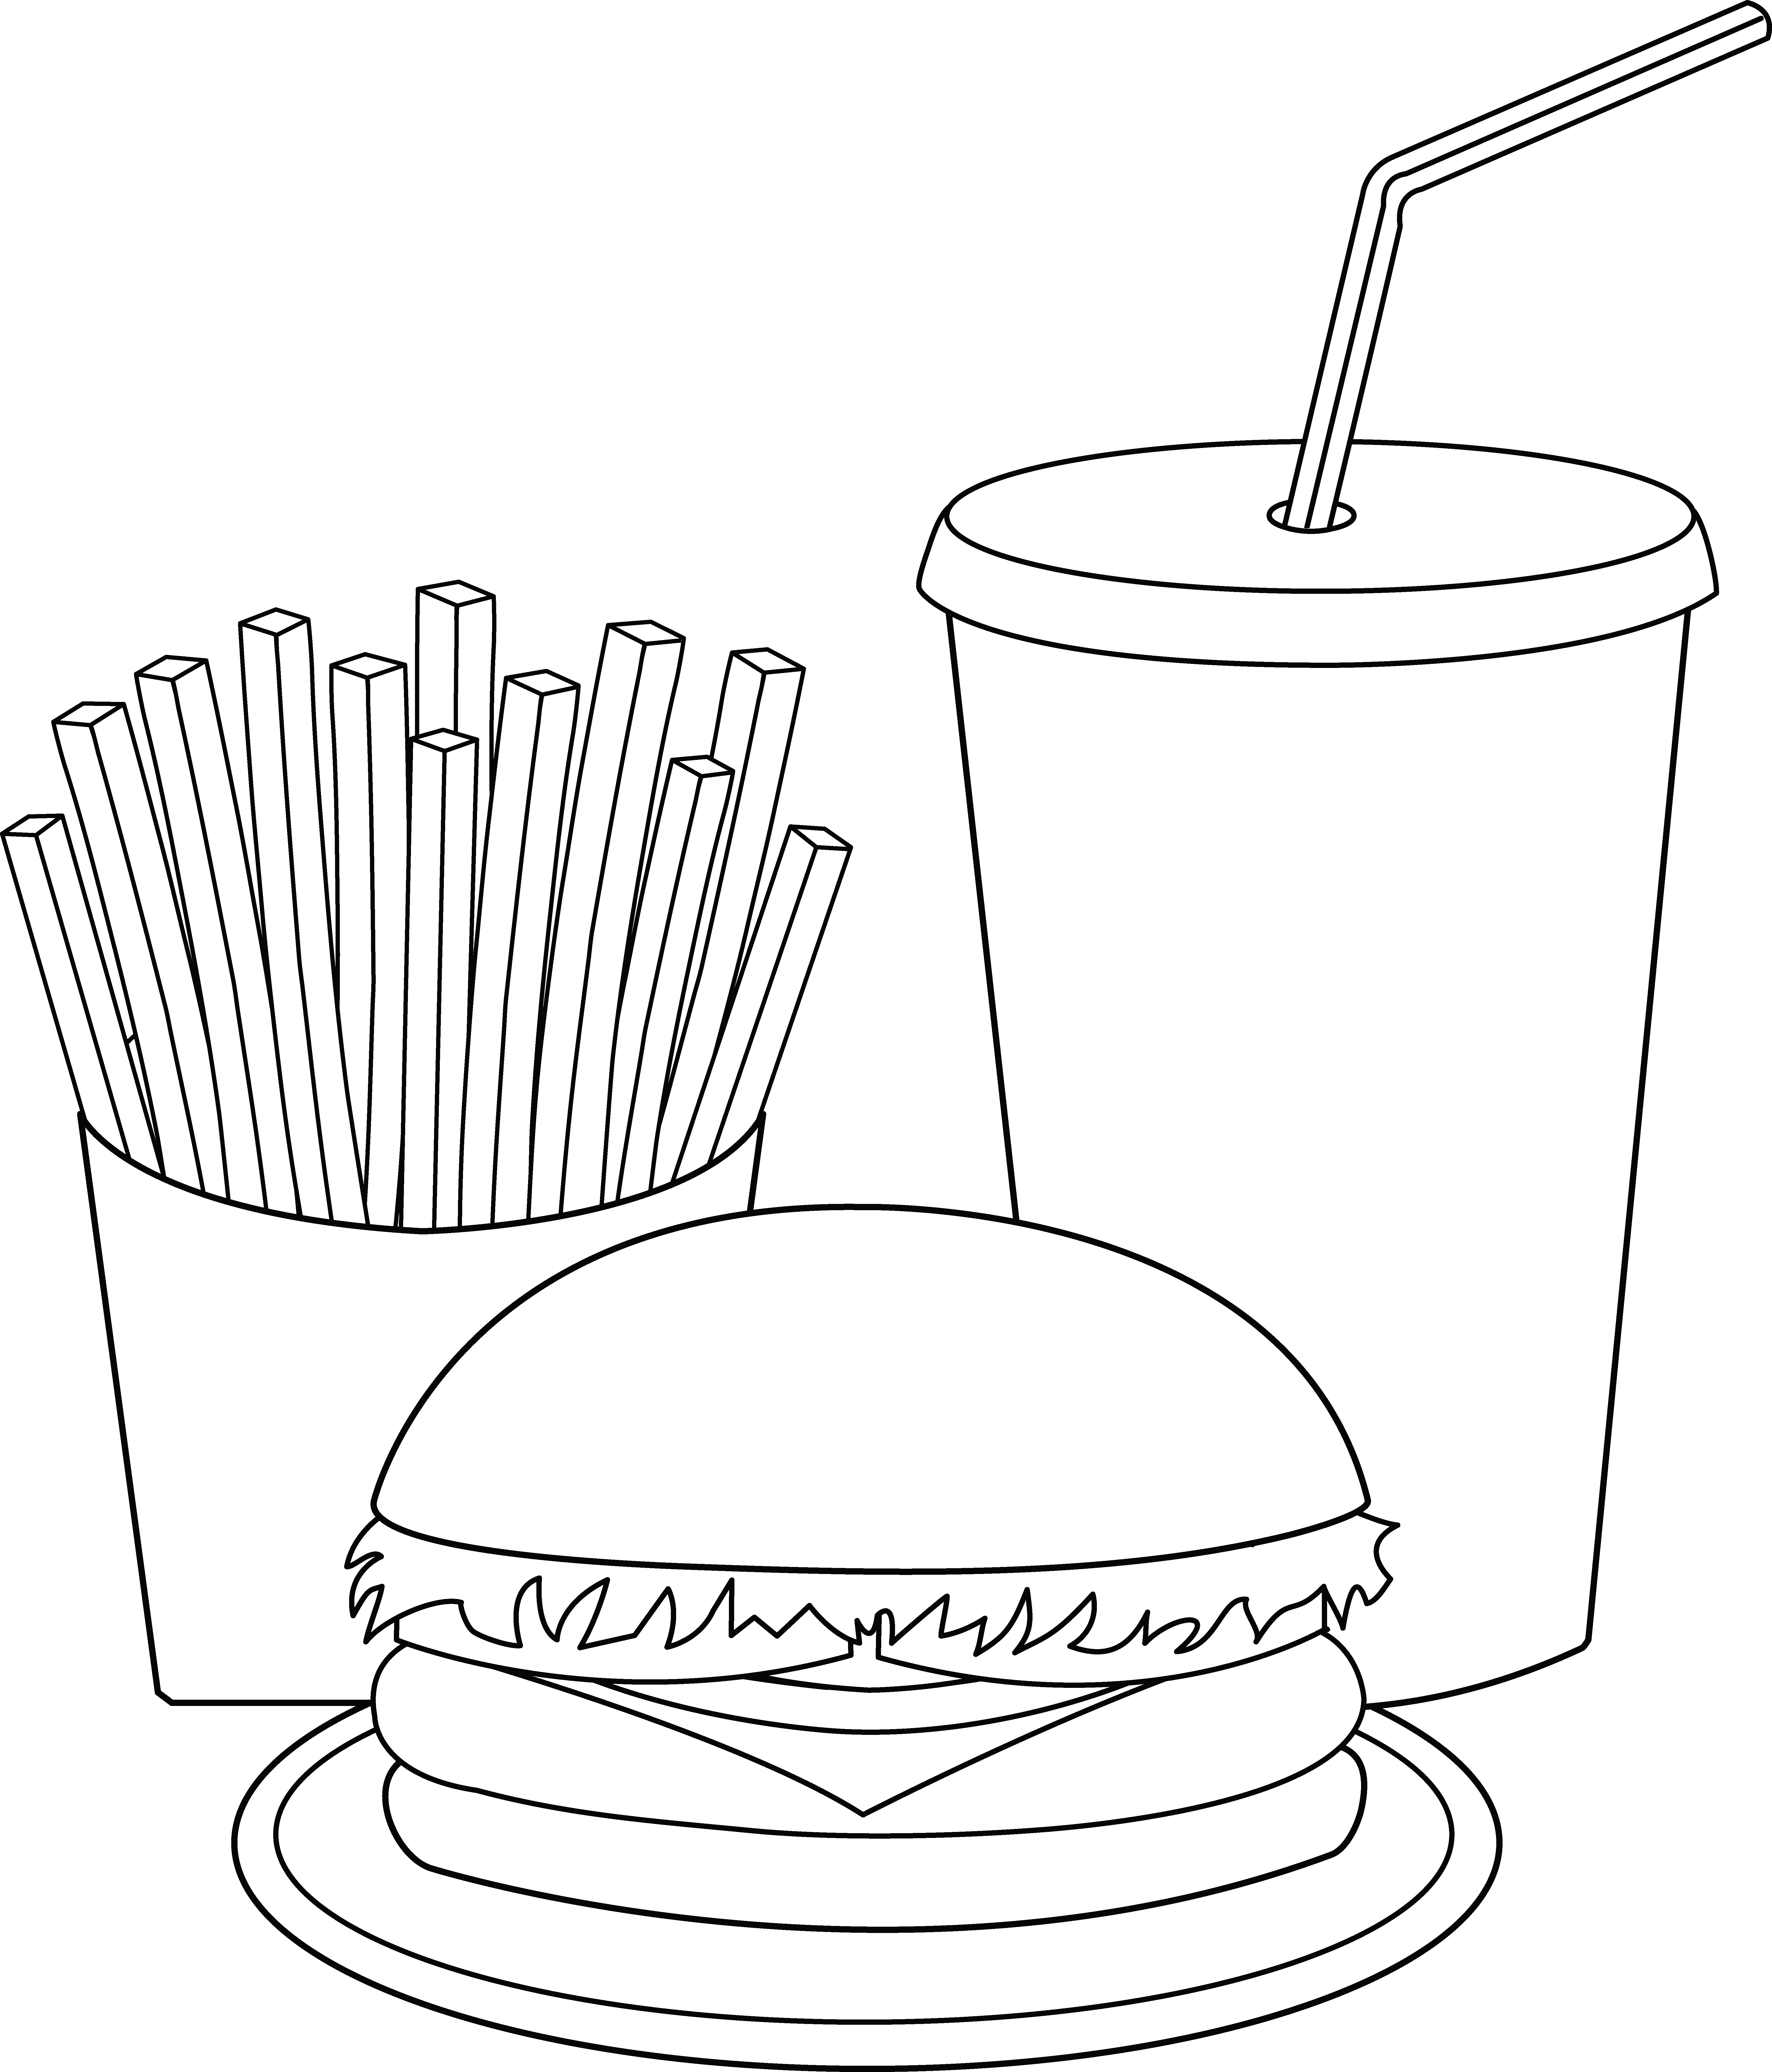 hamburger-coloring-page-0016-q1